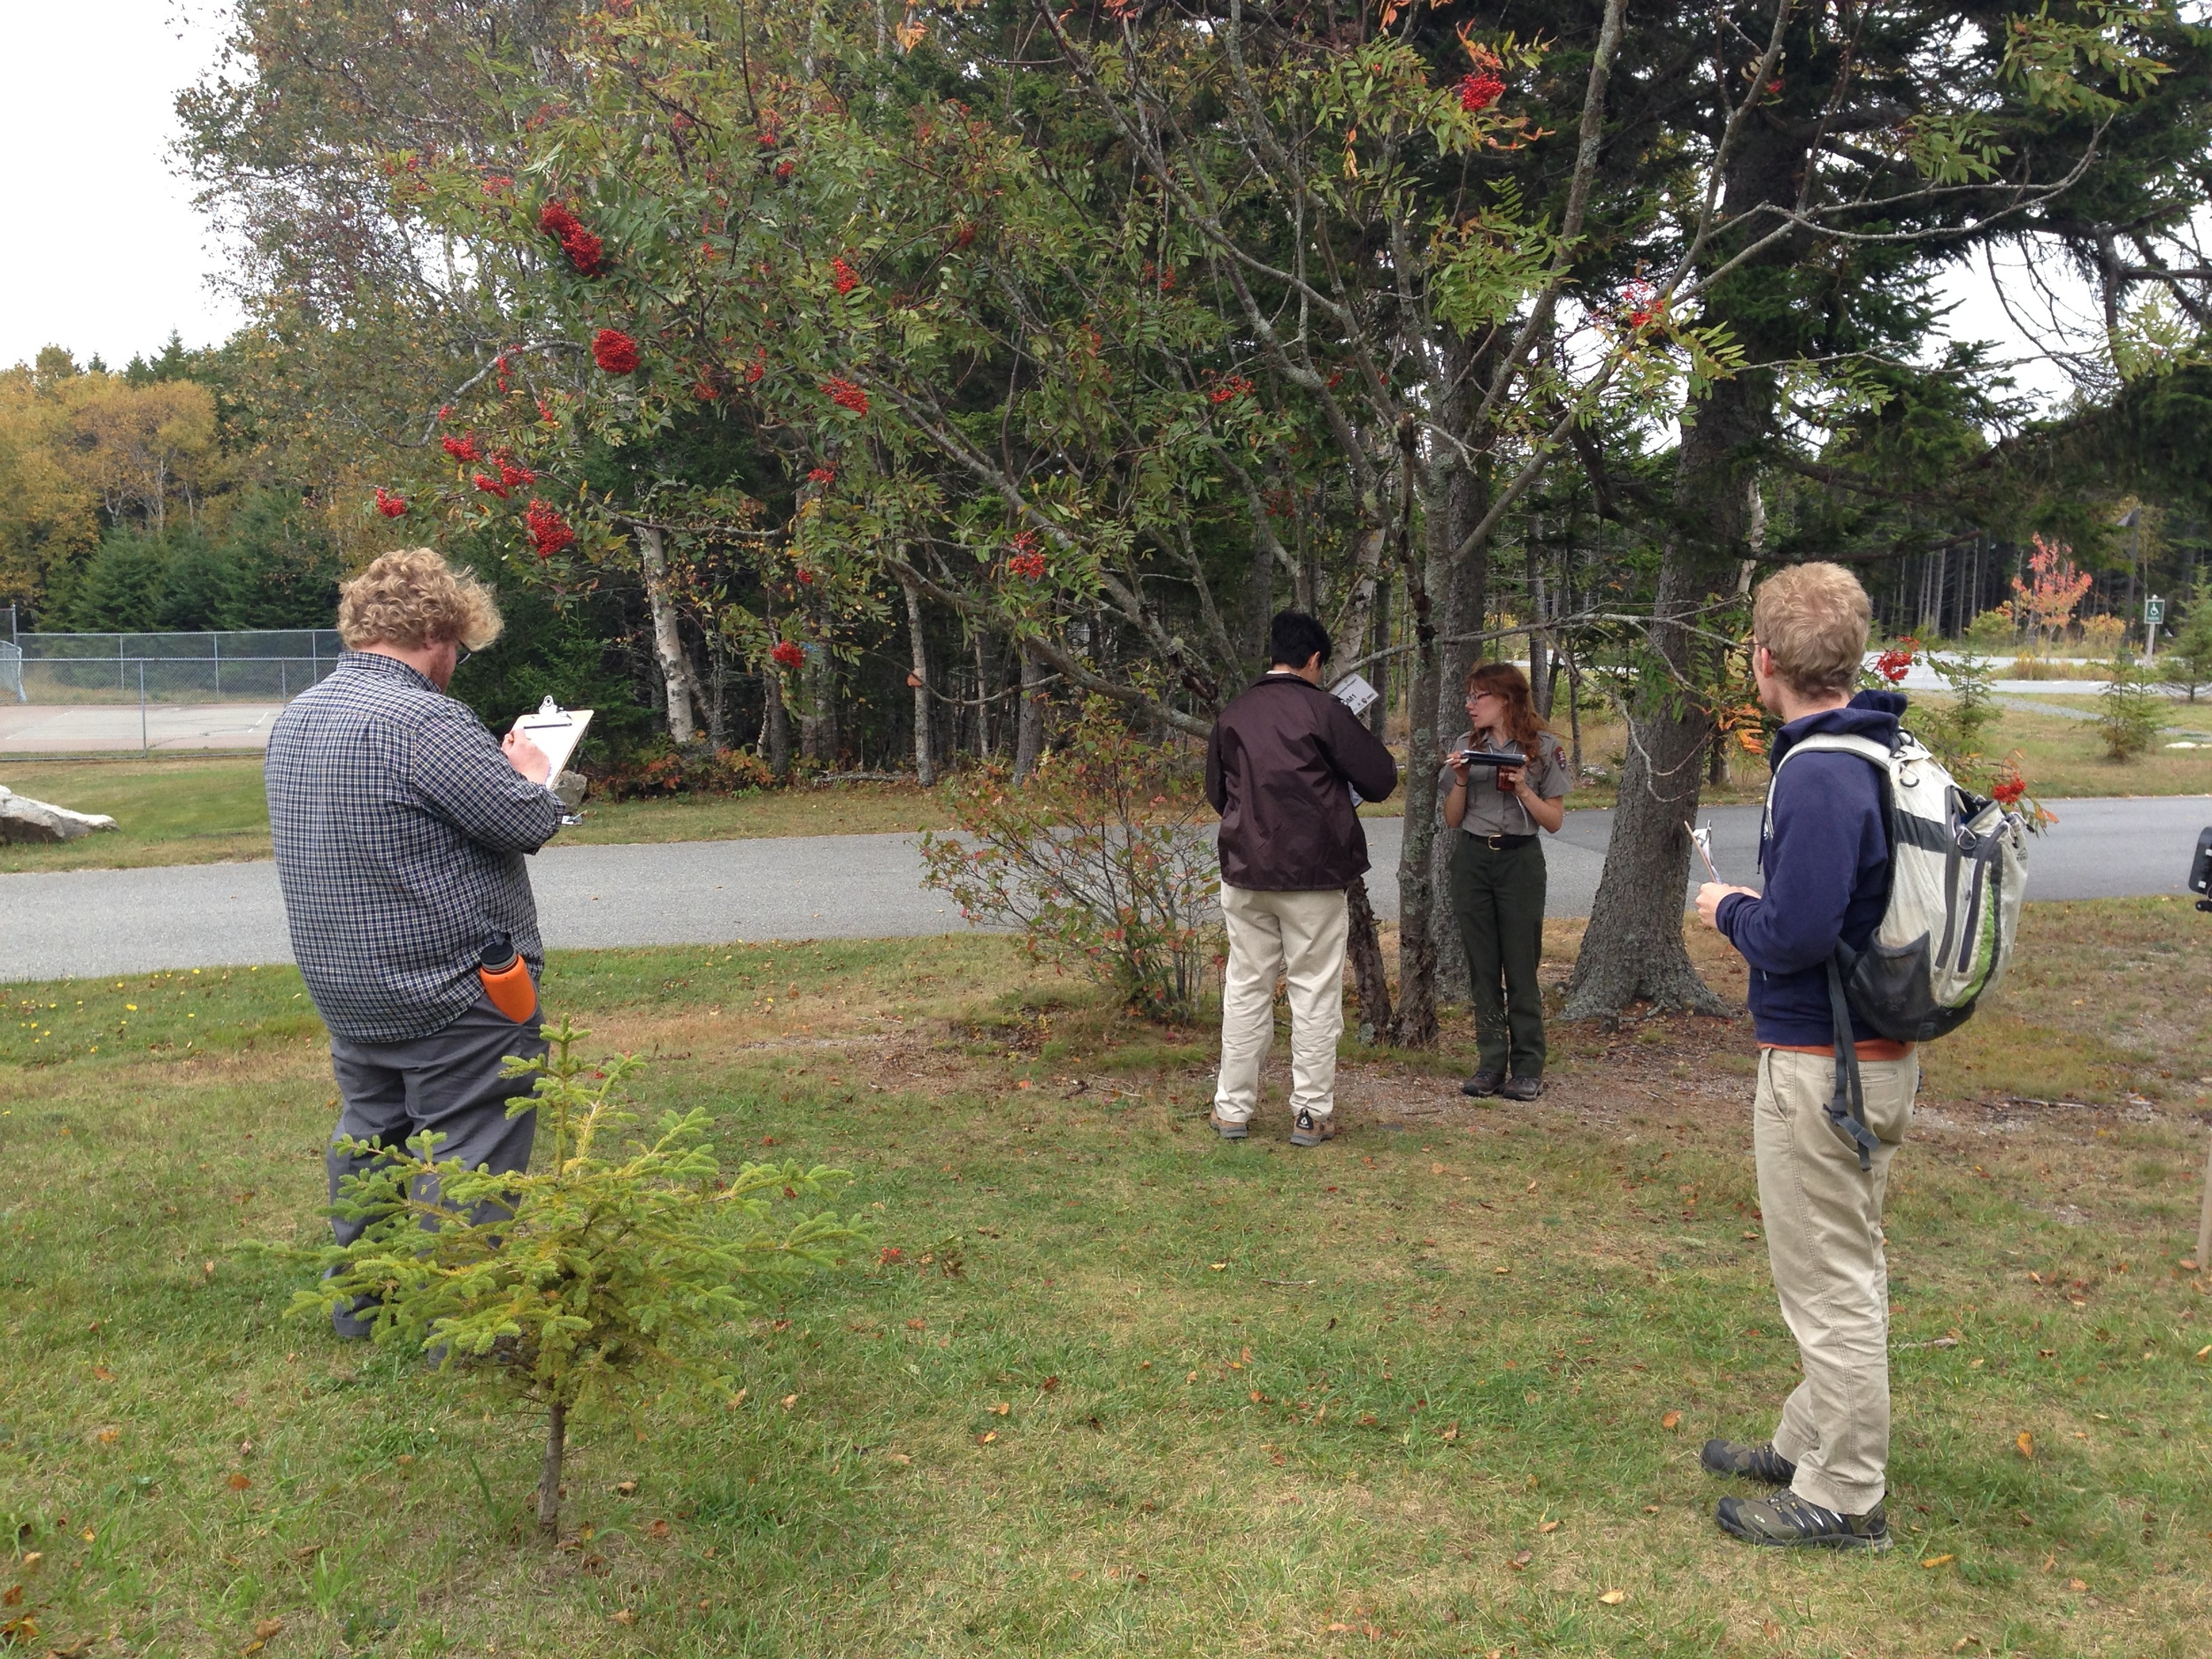 Symposium attendees collecting phenology data.